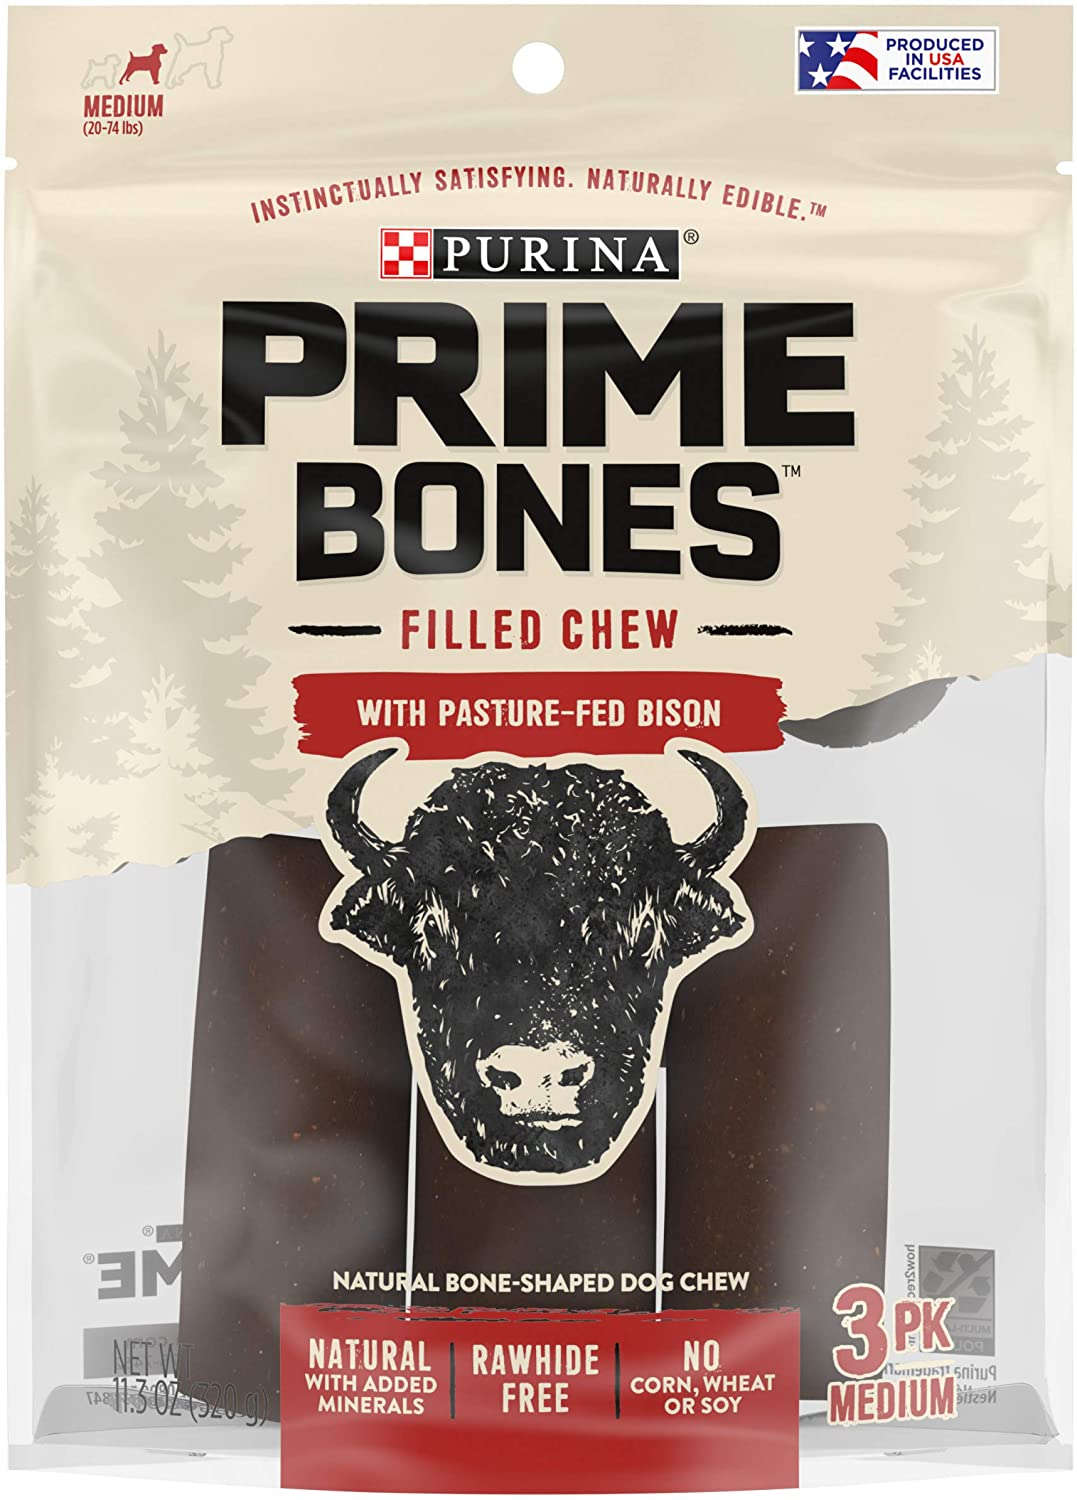 Purina Prime Bones Dog Bone, Made in USA Facilities, Natural Medium Dog Treats, Filled Chew with Pasture-Fed Bison - 11.3 oz. Pouch